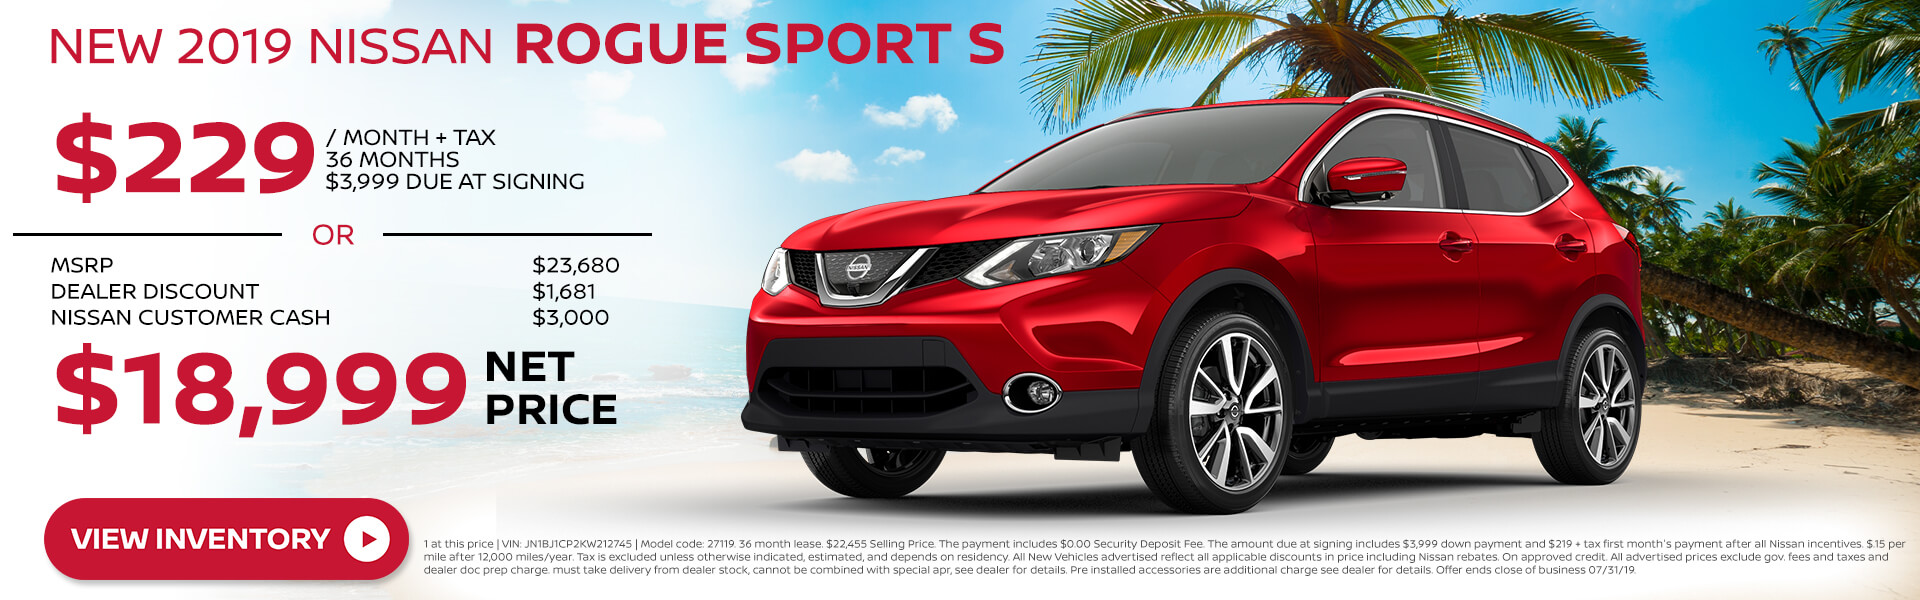 2019 Nissan Rogue Sport - Lease for $229